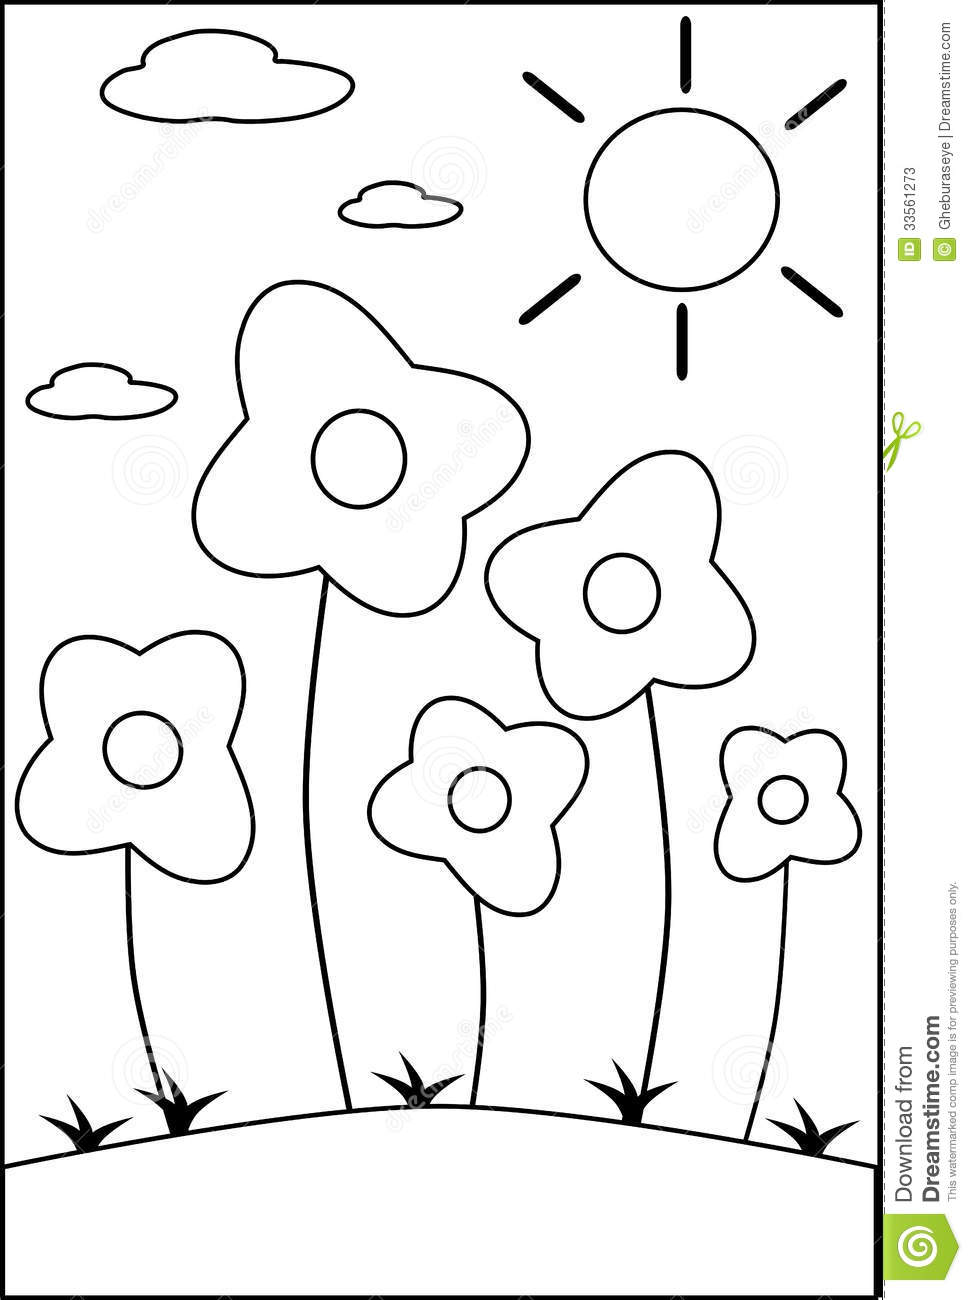 New Printable Colouring Pages For 5 Year Olds